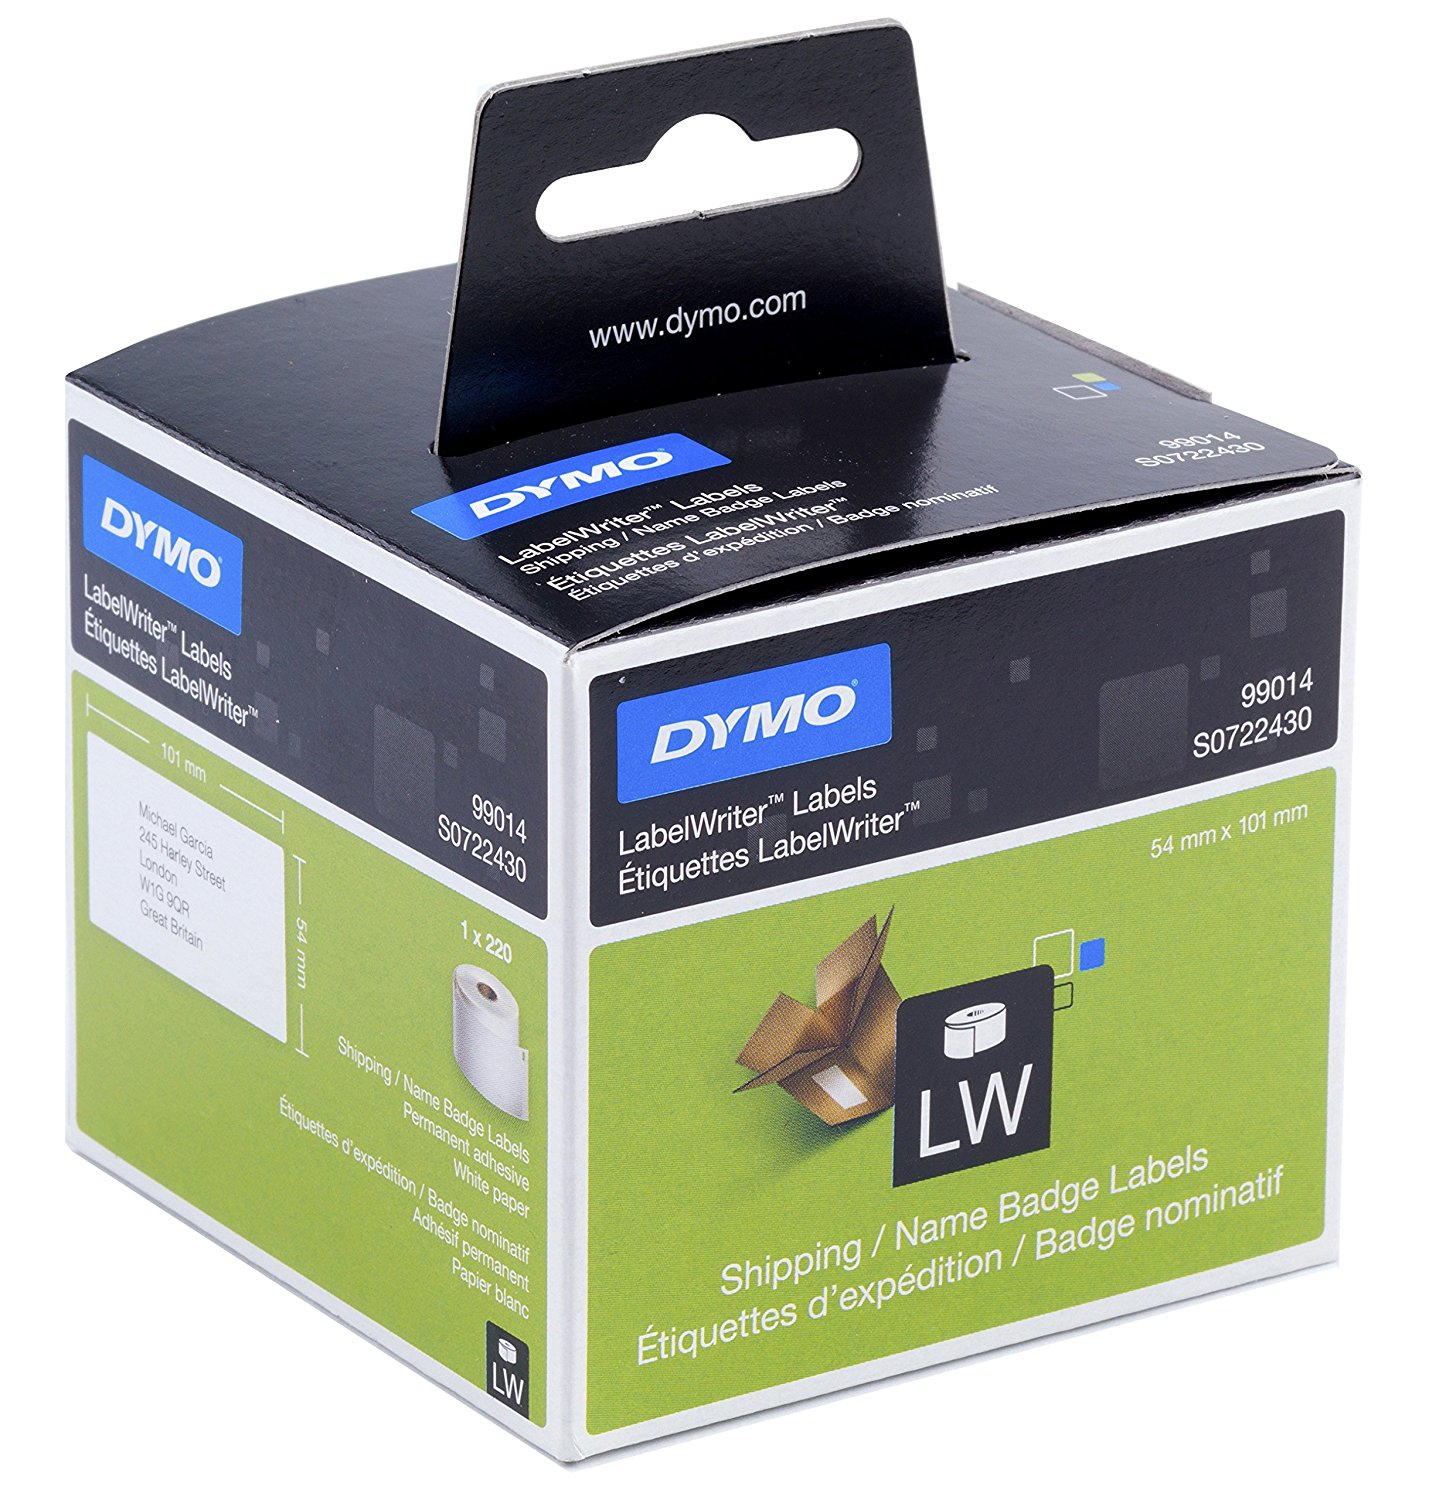 DYMO Shipping/Name badge Labels